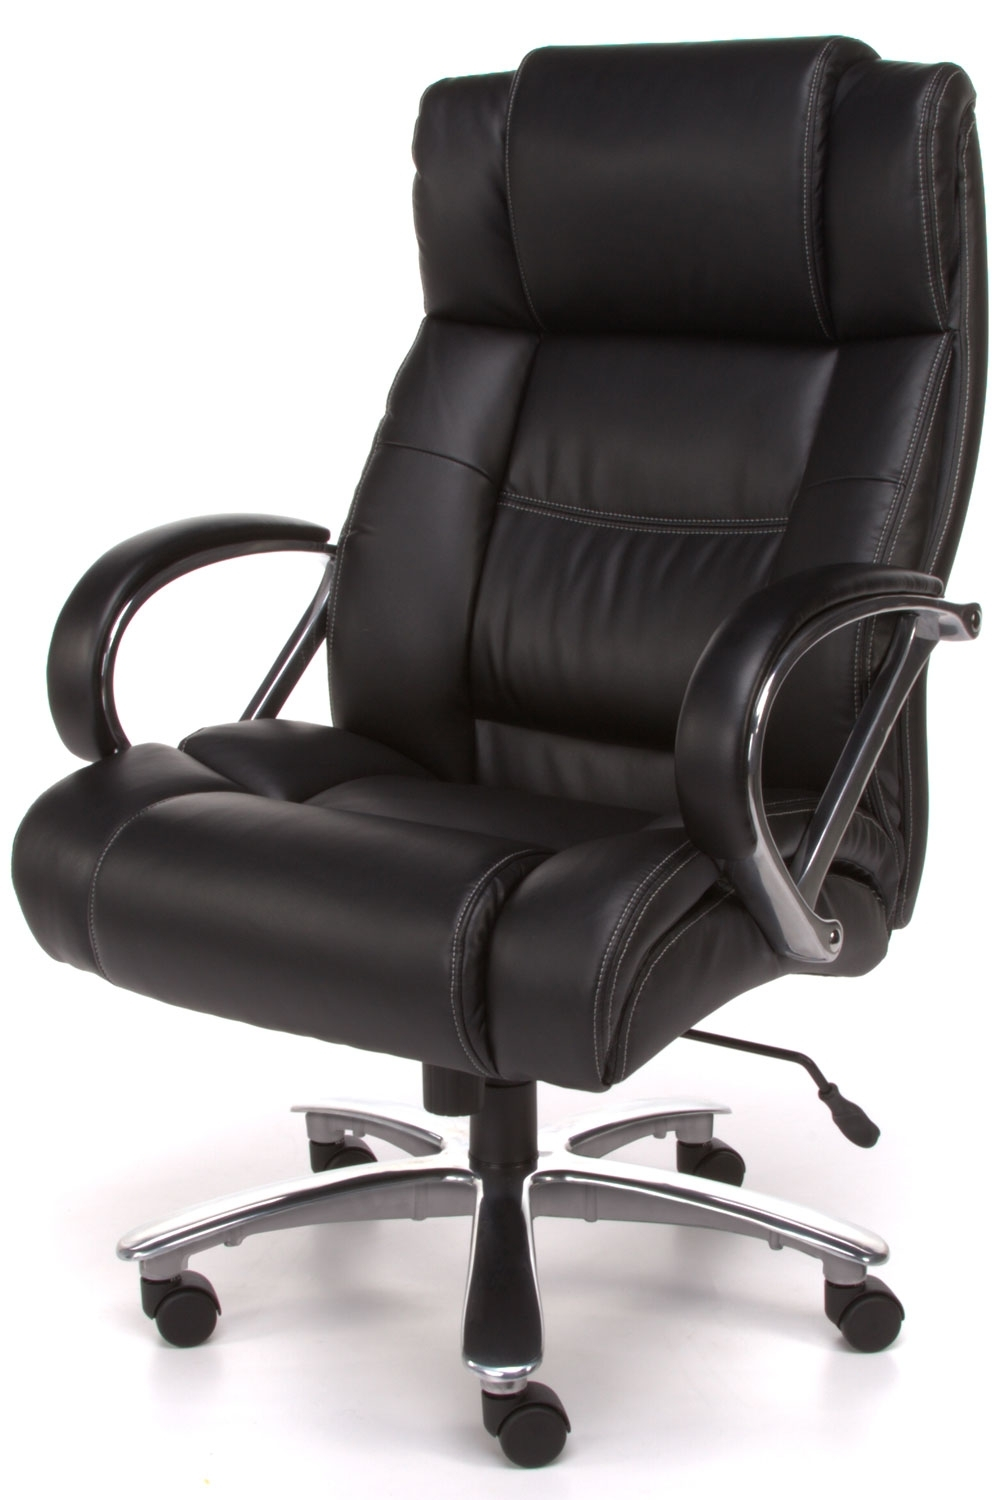 Large Executive Office Chairs Pertaining To Widely Used 810 Lx Avenger Series Big And Tall Executive Office Chair In (View 3 of 20)